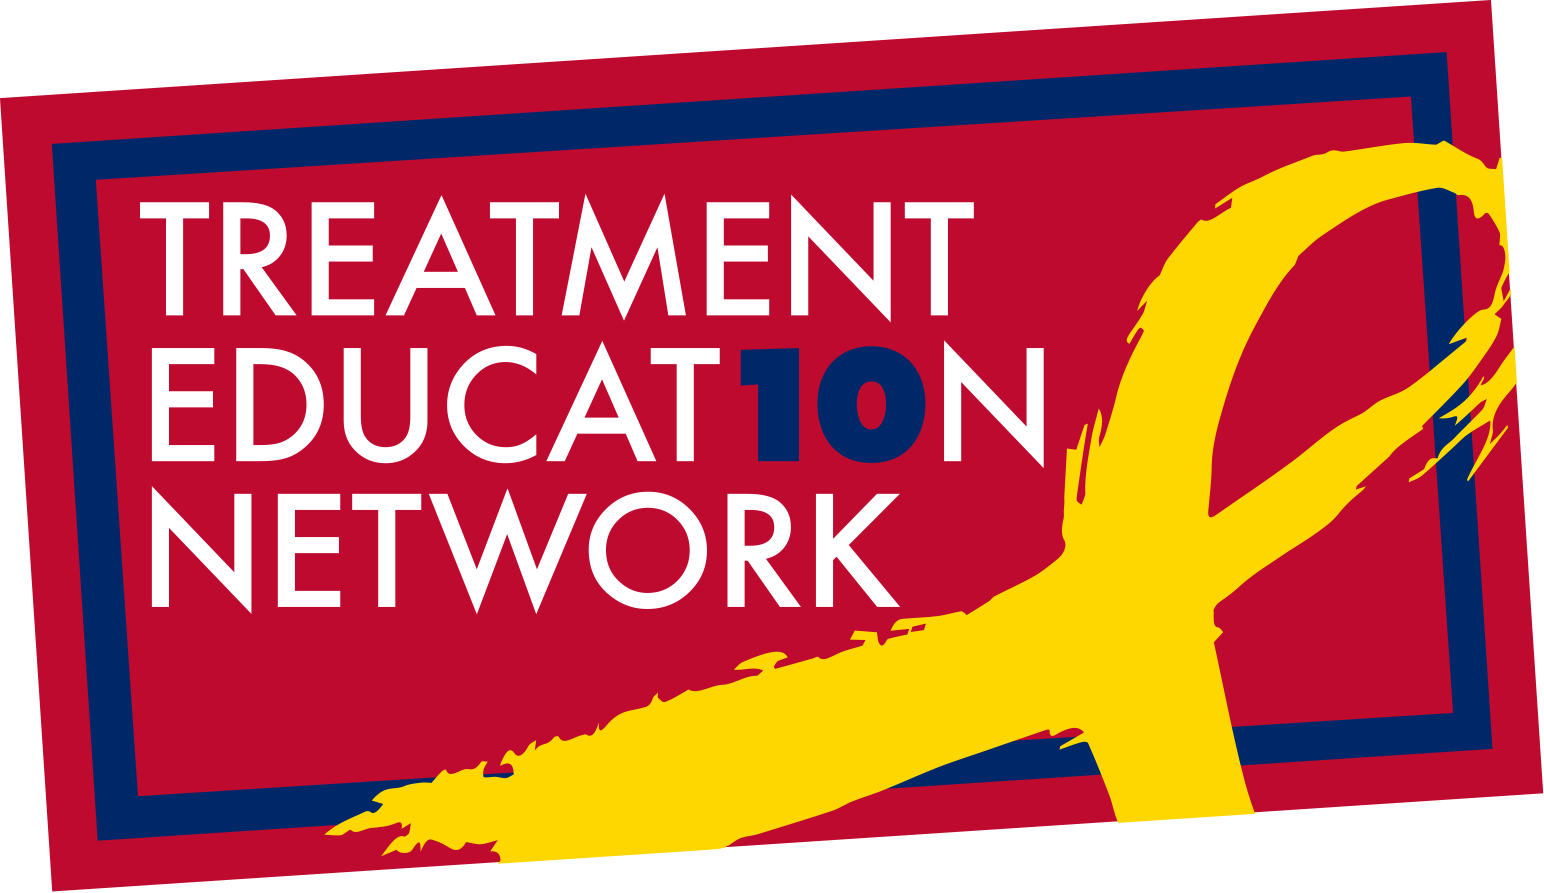 Treatment Educat10n Network (TEN) is an all volunteer grass-roots non-profit (501(3)(c) organization.